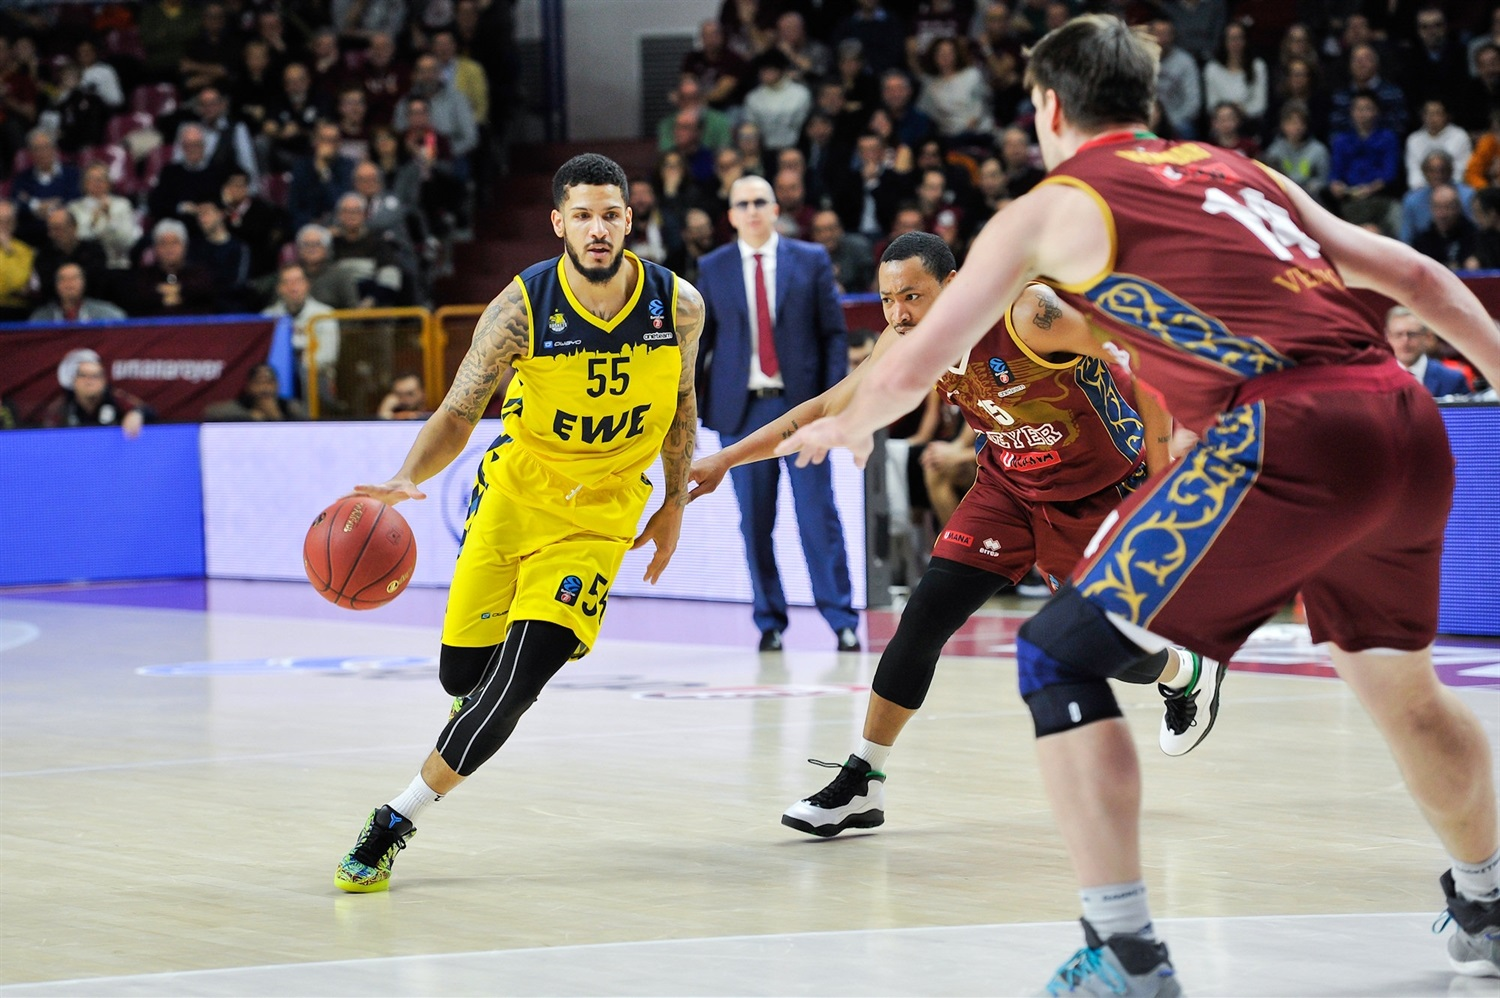 Tyler Larson - EWE Baskets Oldenburg (photo Alessandro Scarpa - Reyer) - EC19